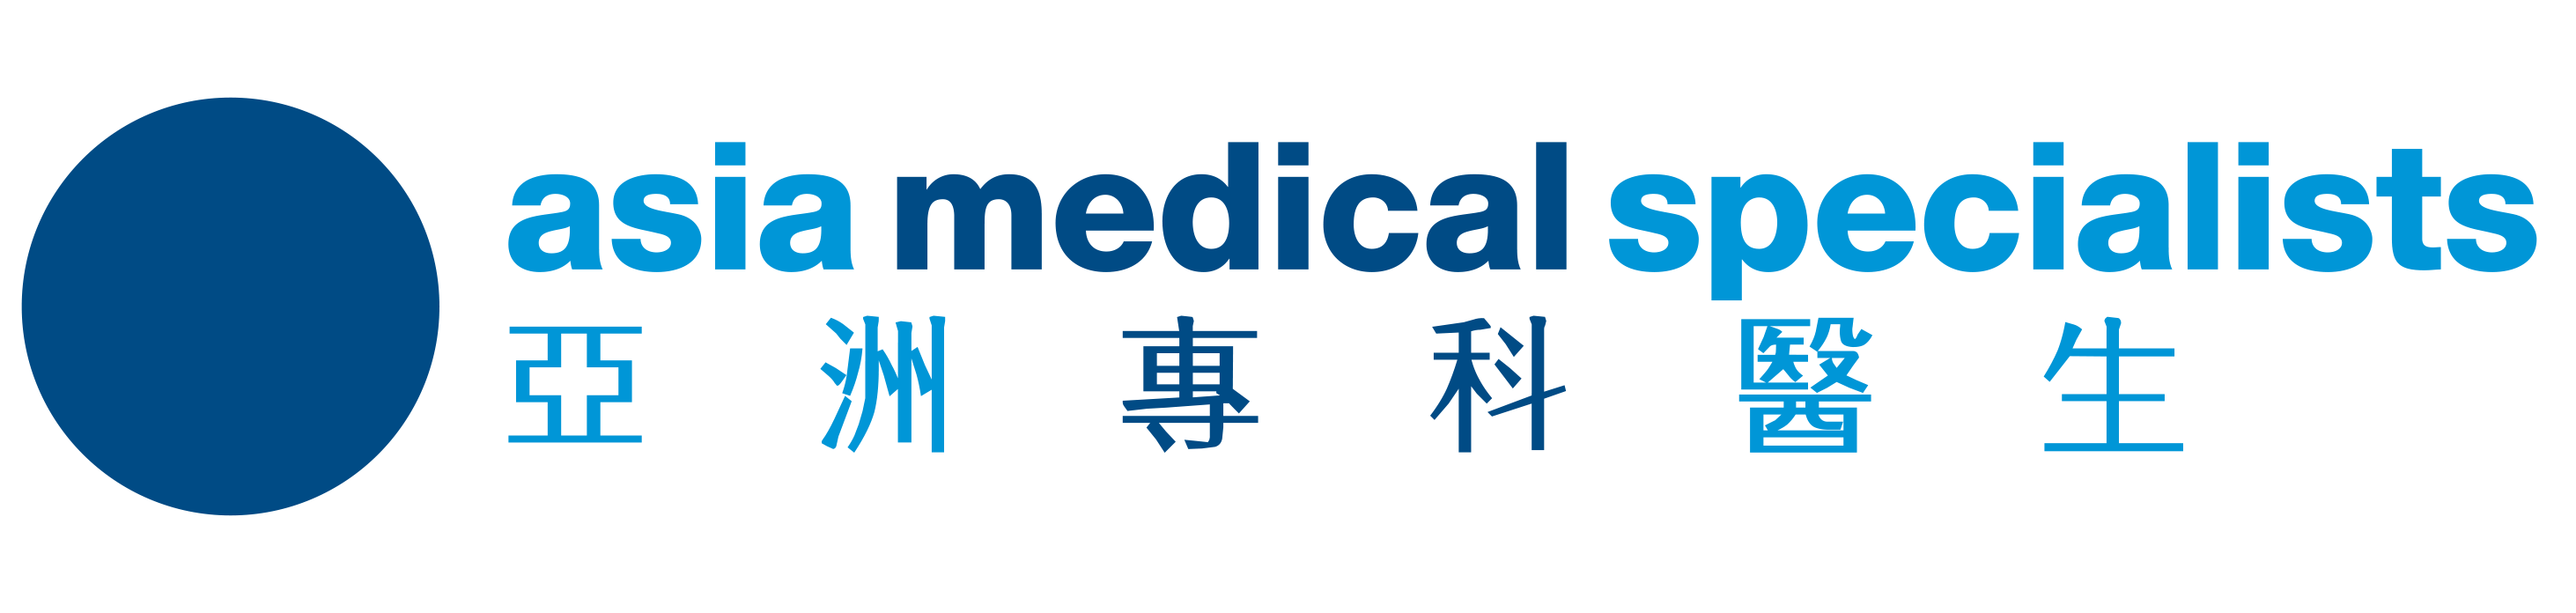 Asia Medical Specialists Logo